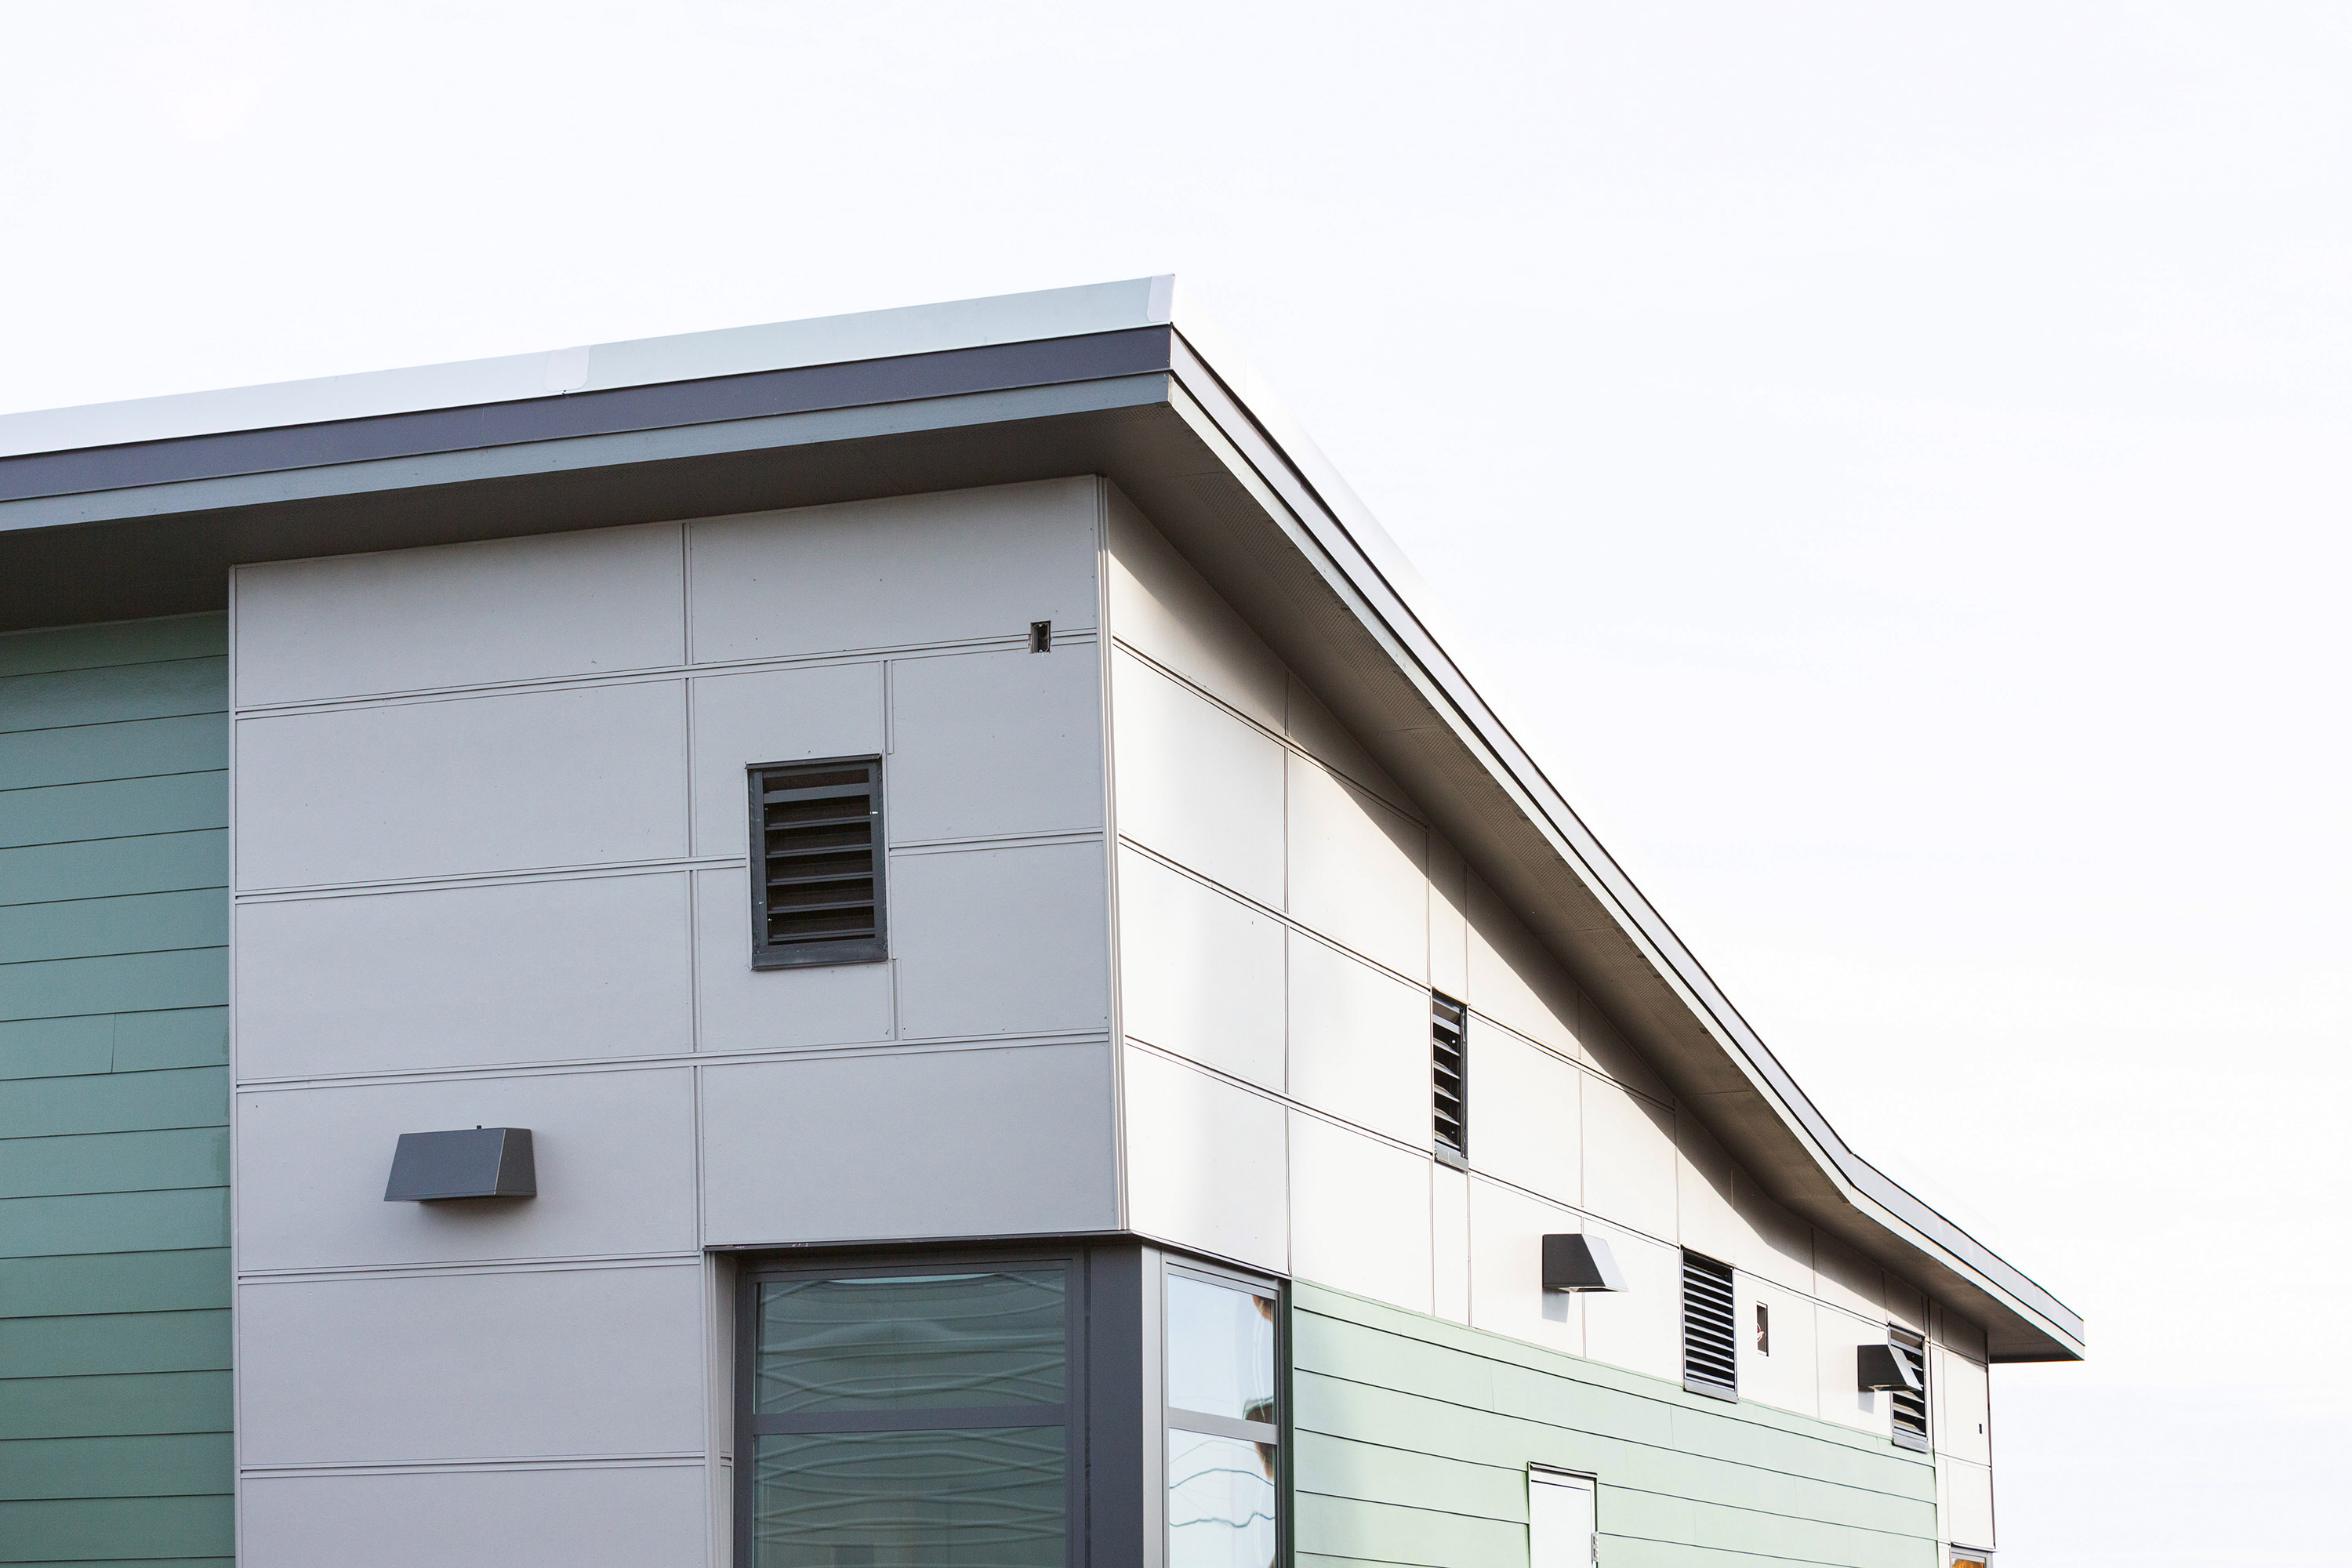 Close up of the school's exterior side paneling and roof.